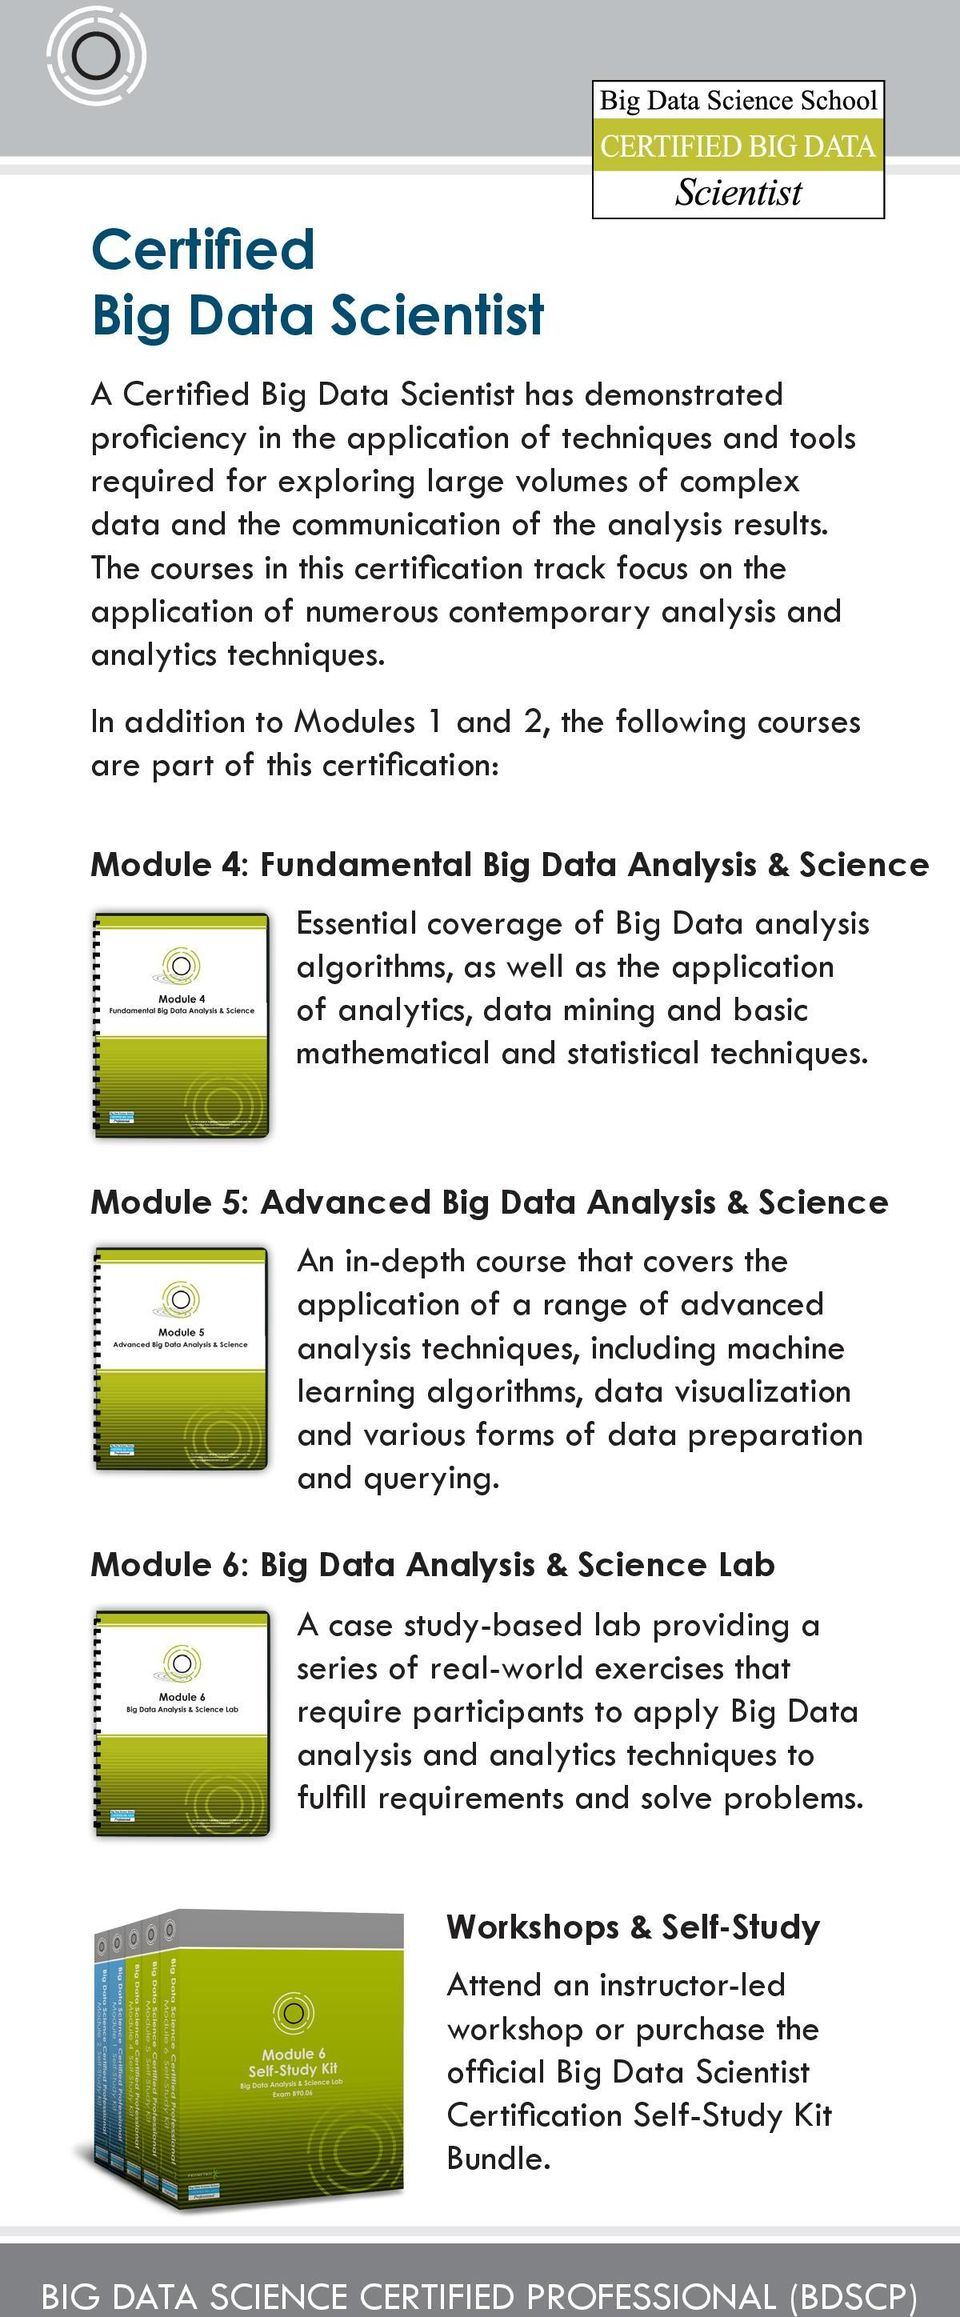 In addition to Modules 1 and 2, the following courses are part of this certification: Module 4: Fundamental Big Data Analysis & Science Essential coverage of Big Data analysis algorithms, as well as